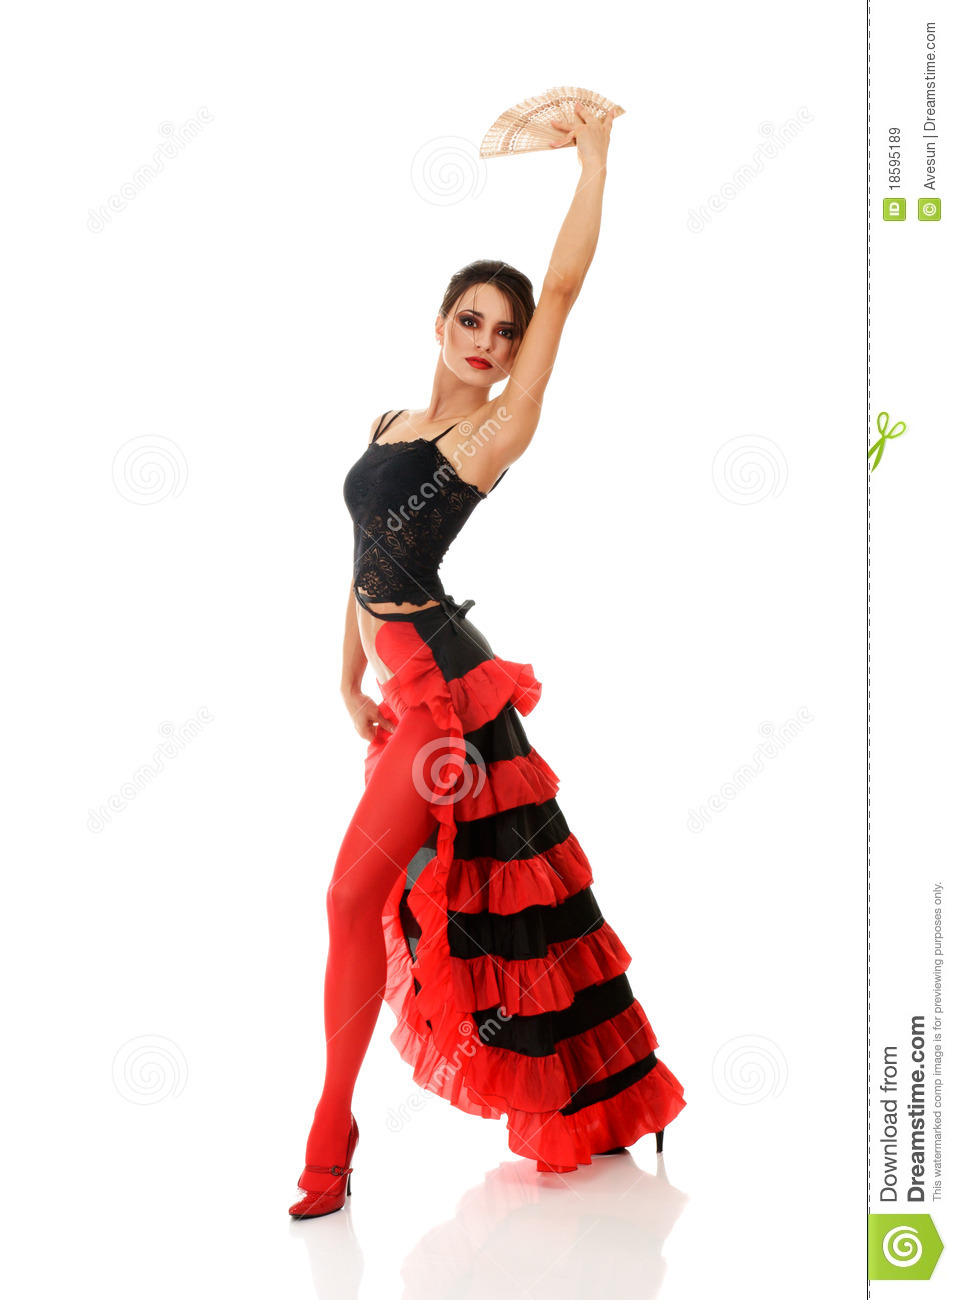 Tango Dancer Royalty Free Stock Images - Image: 18595189